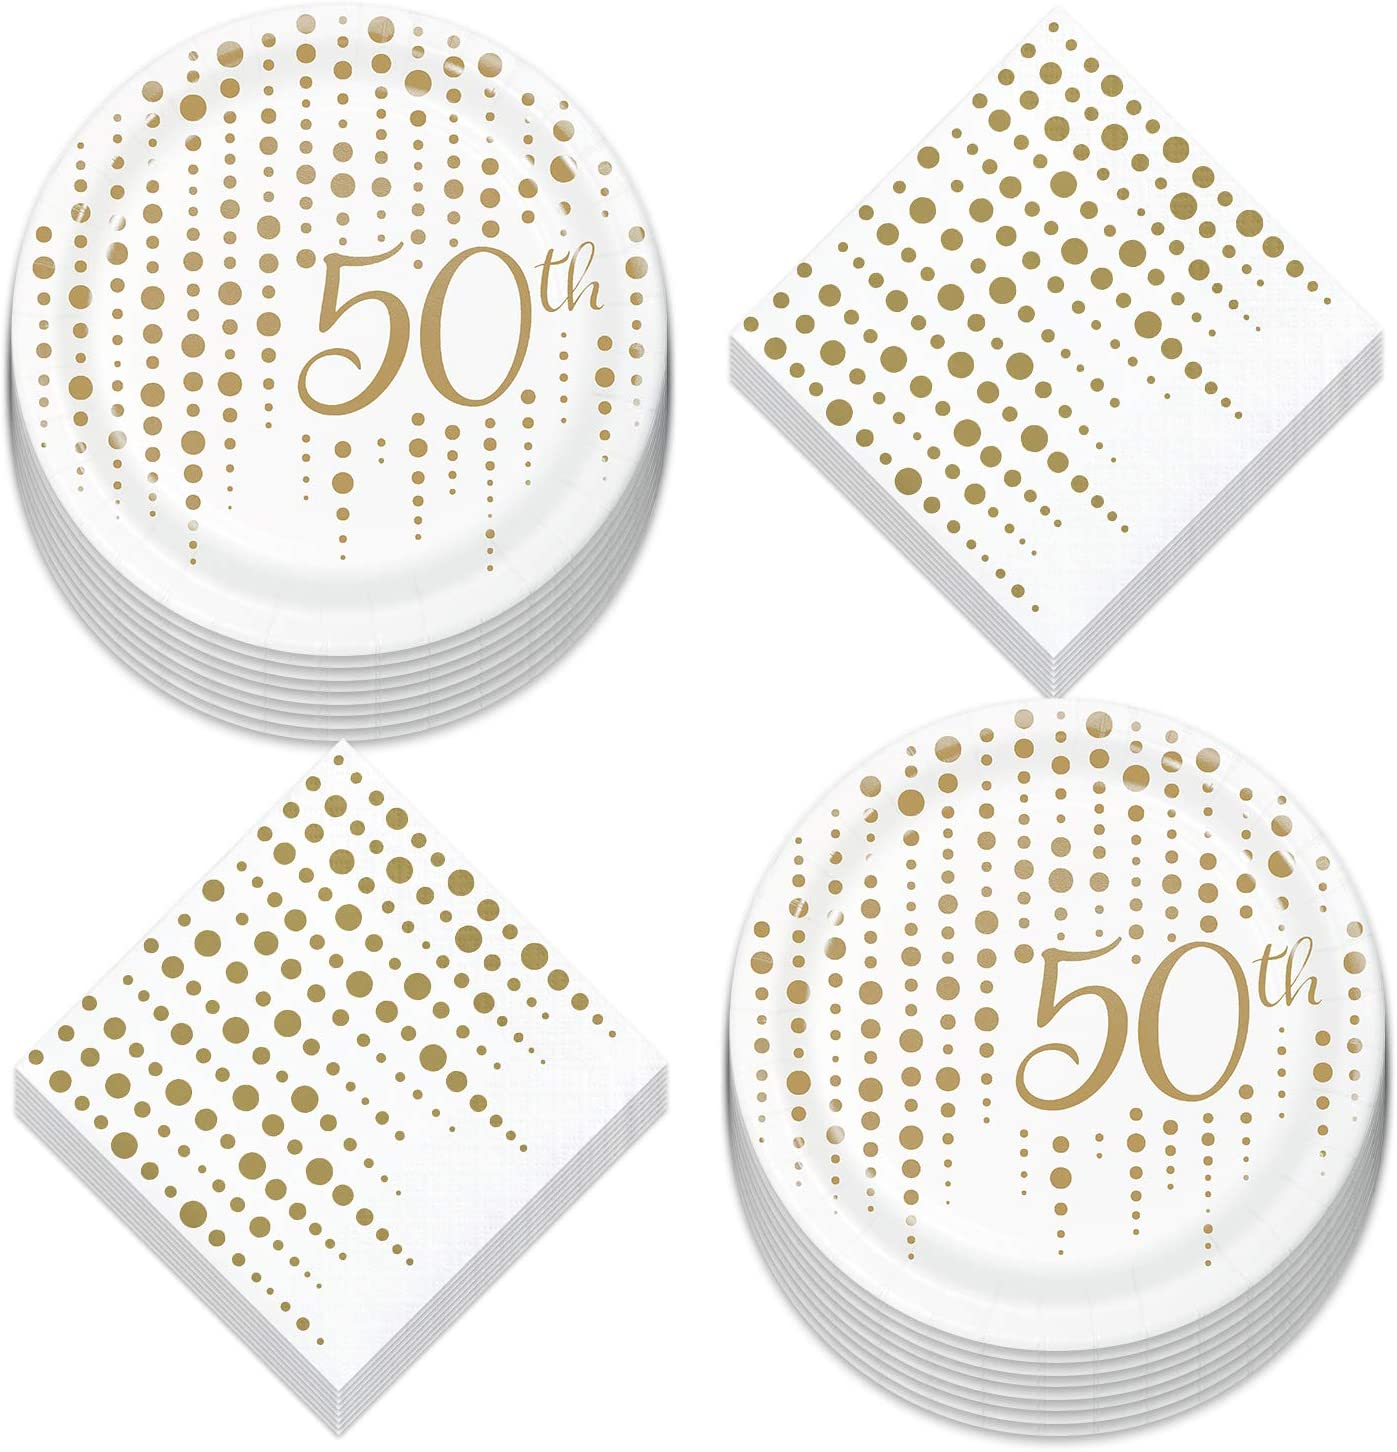 50th Party Supplies for Milestone Birthdays and Anniversaries - Gold Metallic Sparkle and Shine Paper Dessert Plates and Beverage Napkins (Serves 16)